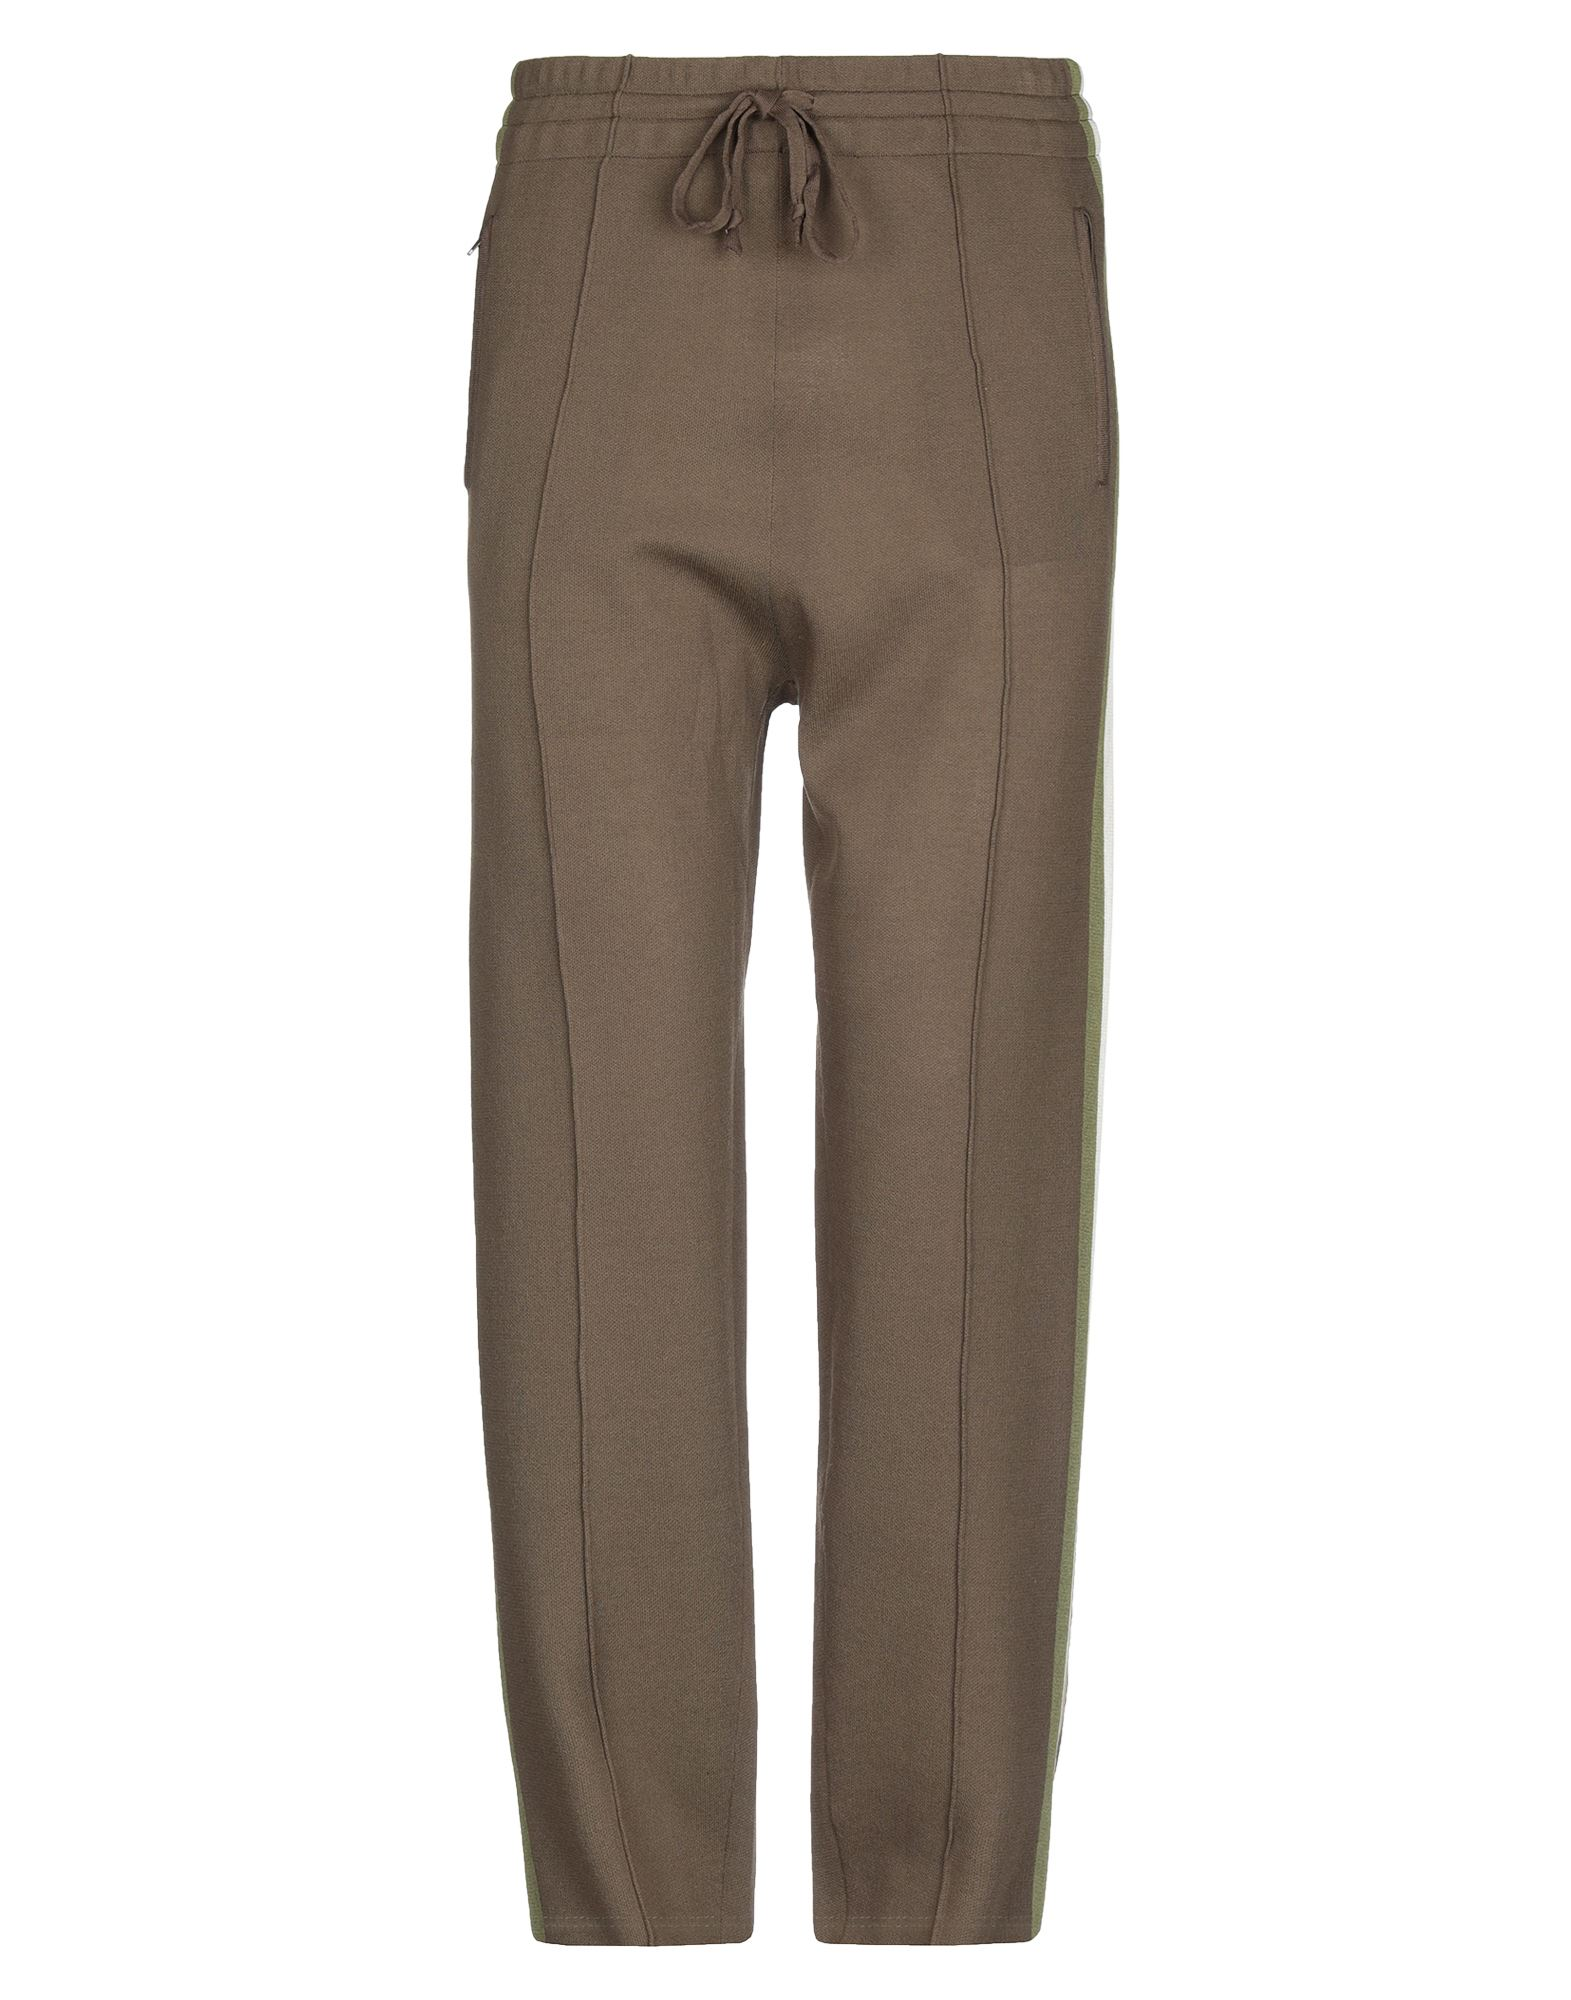 ISABEL MARANT Casual pants. knitted, solid color, side seam stripes, lightweight knit, mid rise, comfort fit, tapered leg, drawstring closure, multipockets, zips at hem. 58% Viscose, 23% Polyamide, 19% Polyester